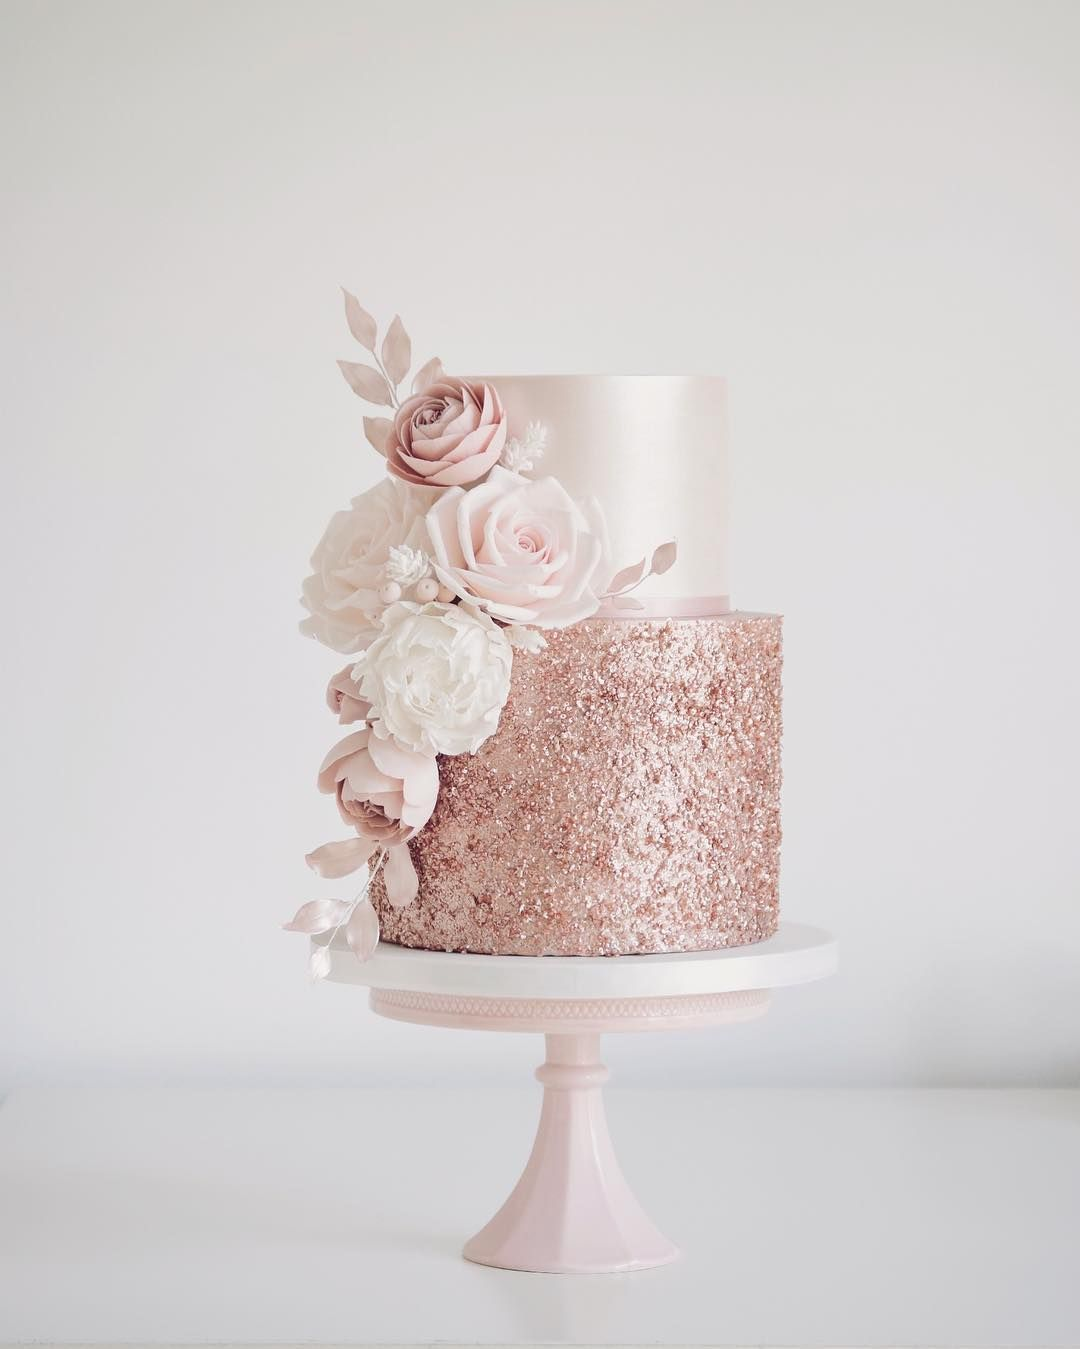 """Tracy James on Instagram: """"Rose gold sequins and blush flowers today for Sola. Hope you enjoy your party at Coombe Abbey x #rosegold #rosegoldcake #cakes #cakemaker…"""""""